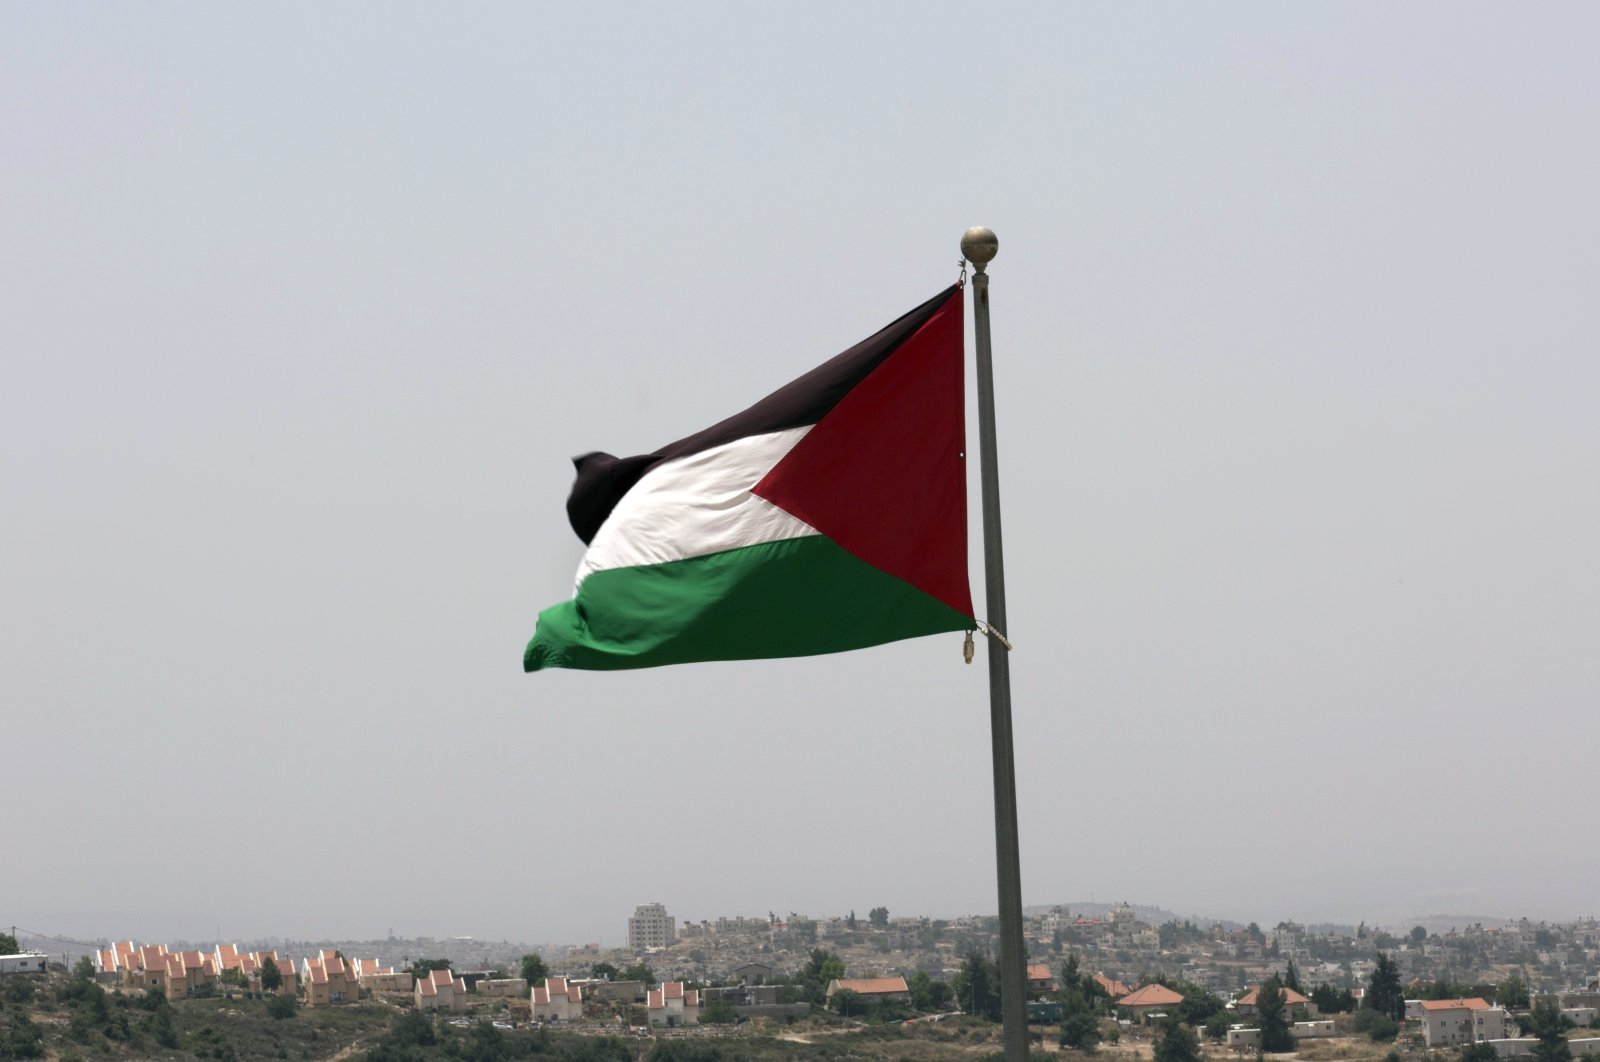 The Israeli settlement of Ateret is seen in the background as the Palestinian national flag flies from the highest point of the occupied West Bank city of Rawabi, north of Ramallah, Palestine, June 4, 2016. (AP Photo)